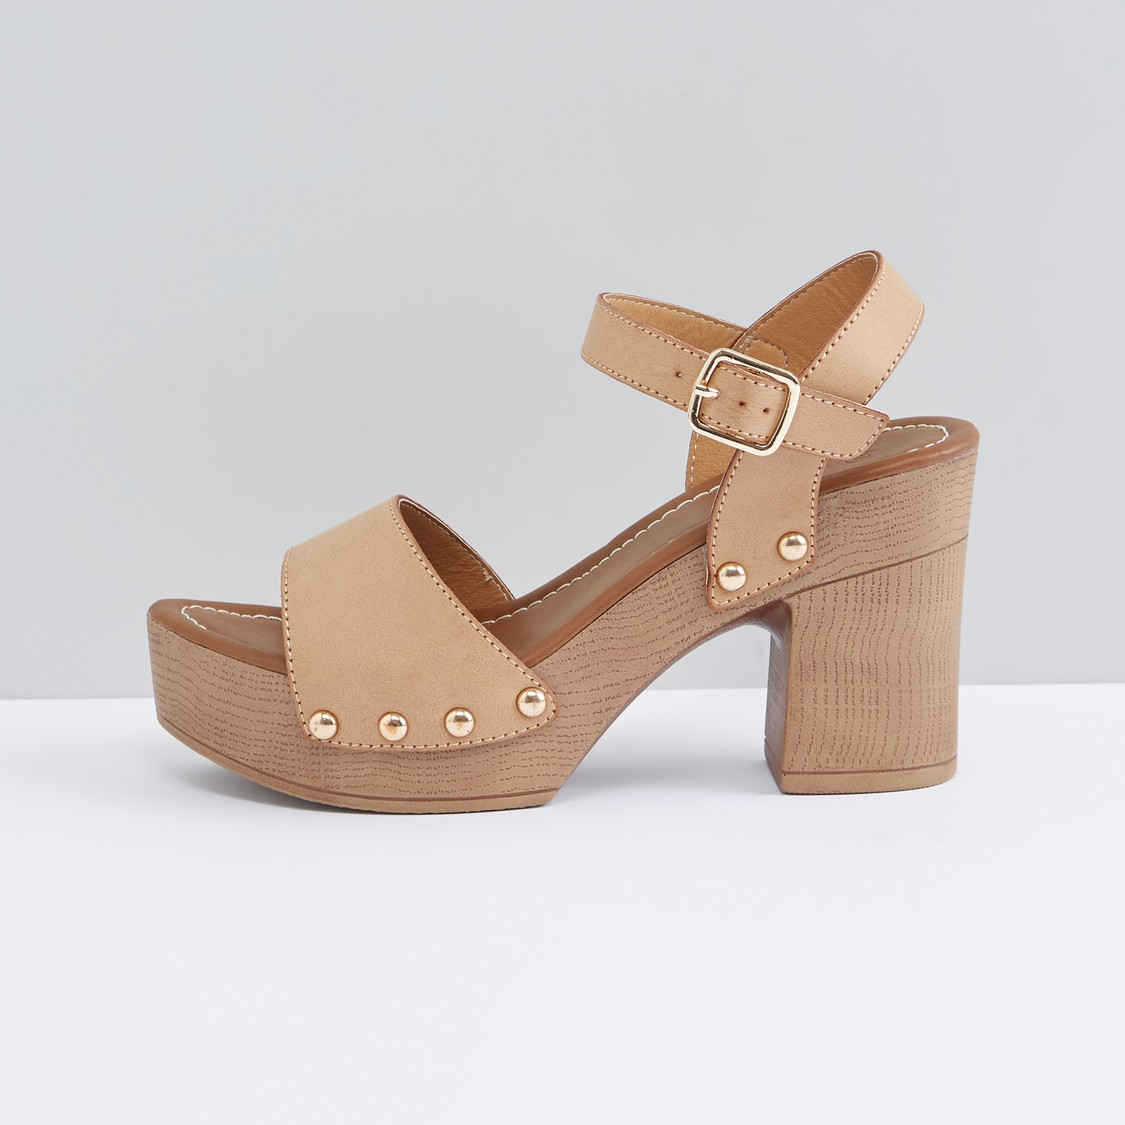 Ankle Strap Sandals with Block Heels and Pin Buckle Closure